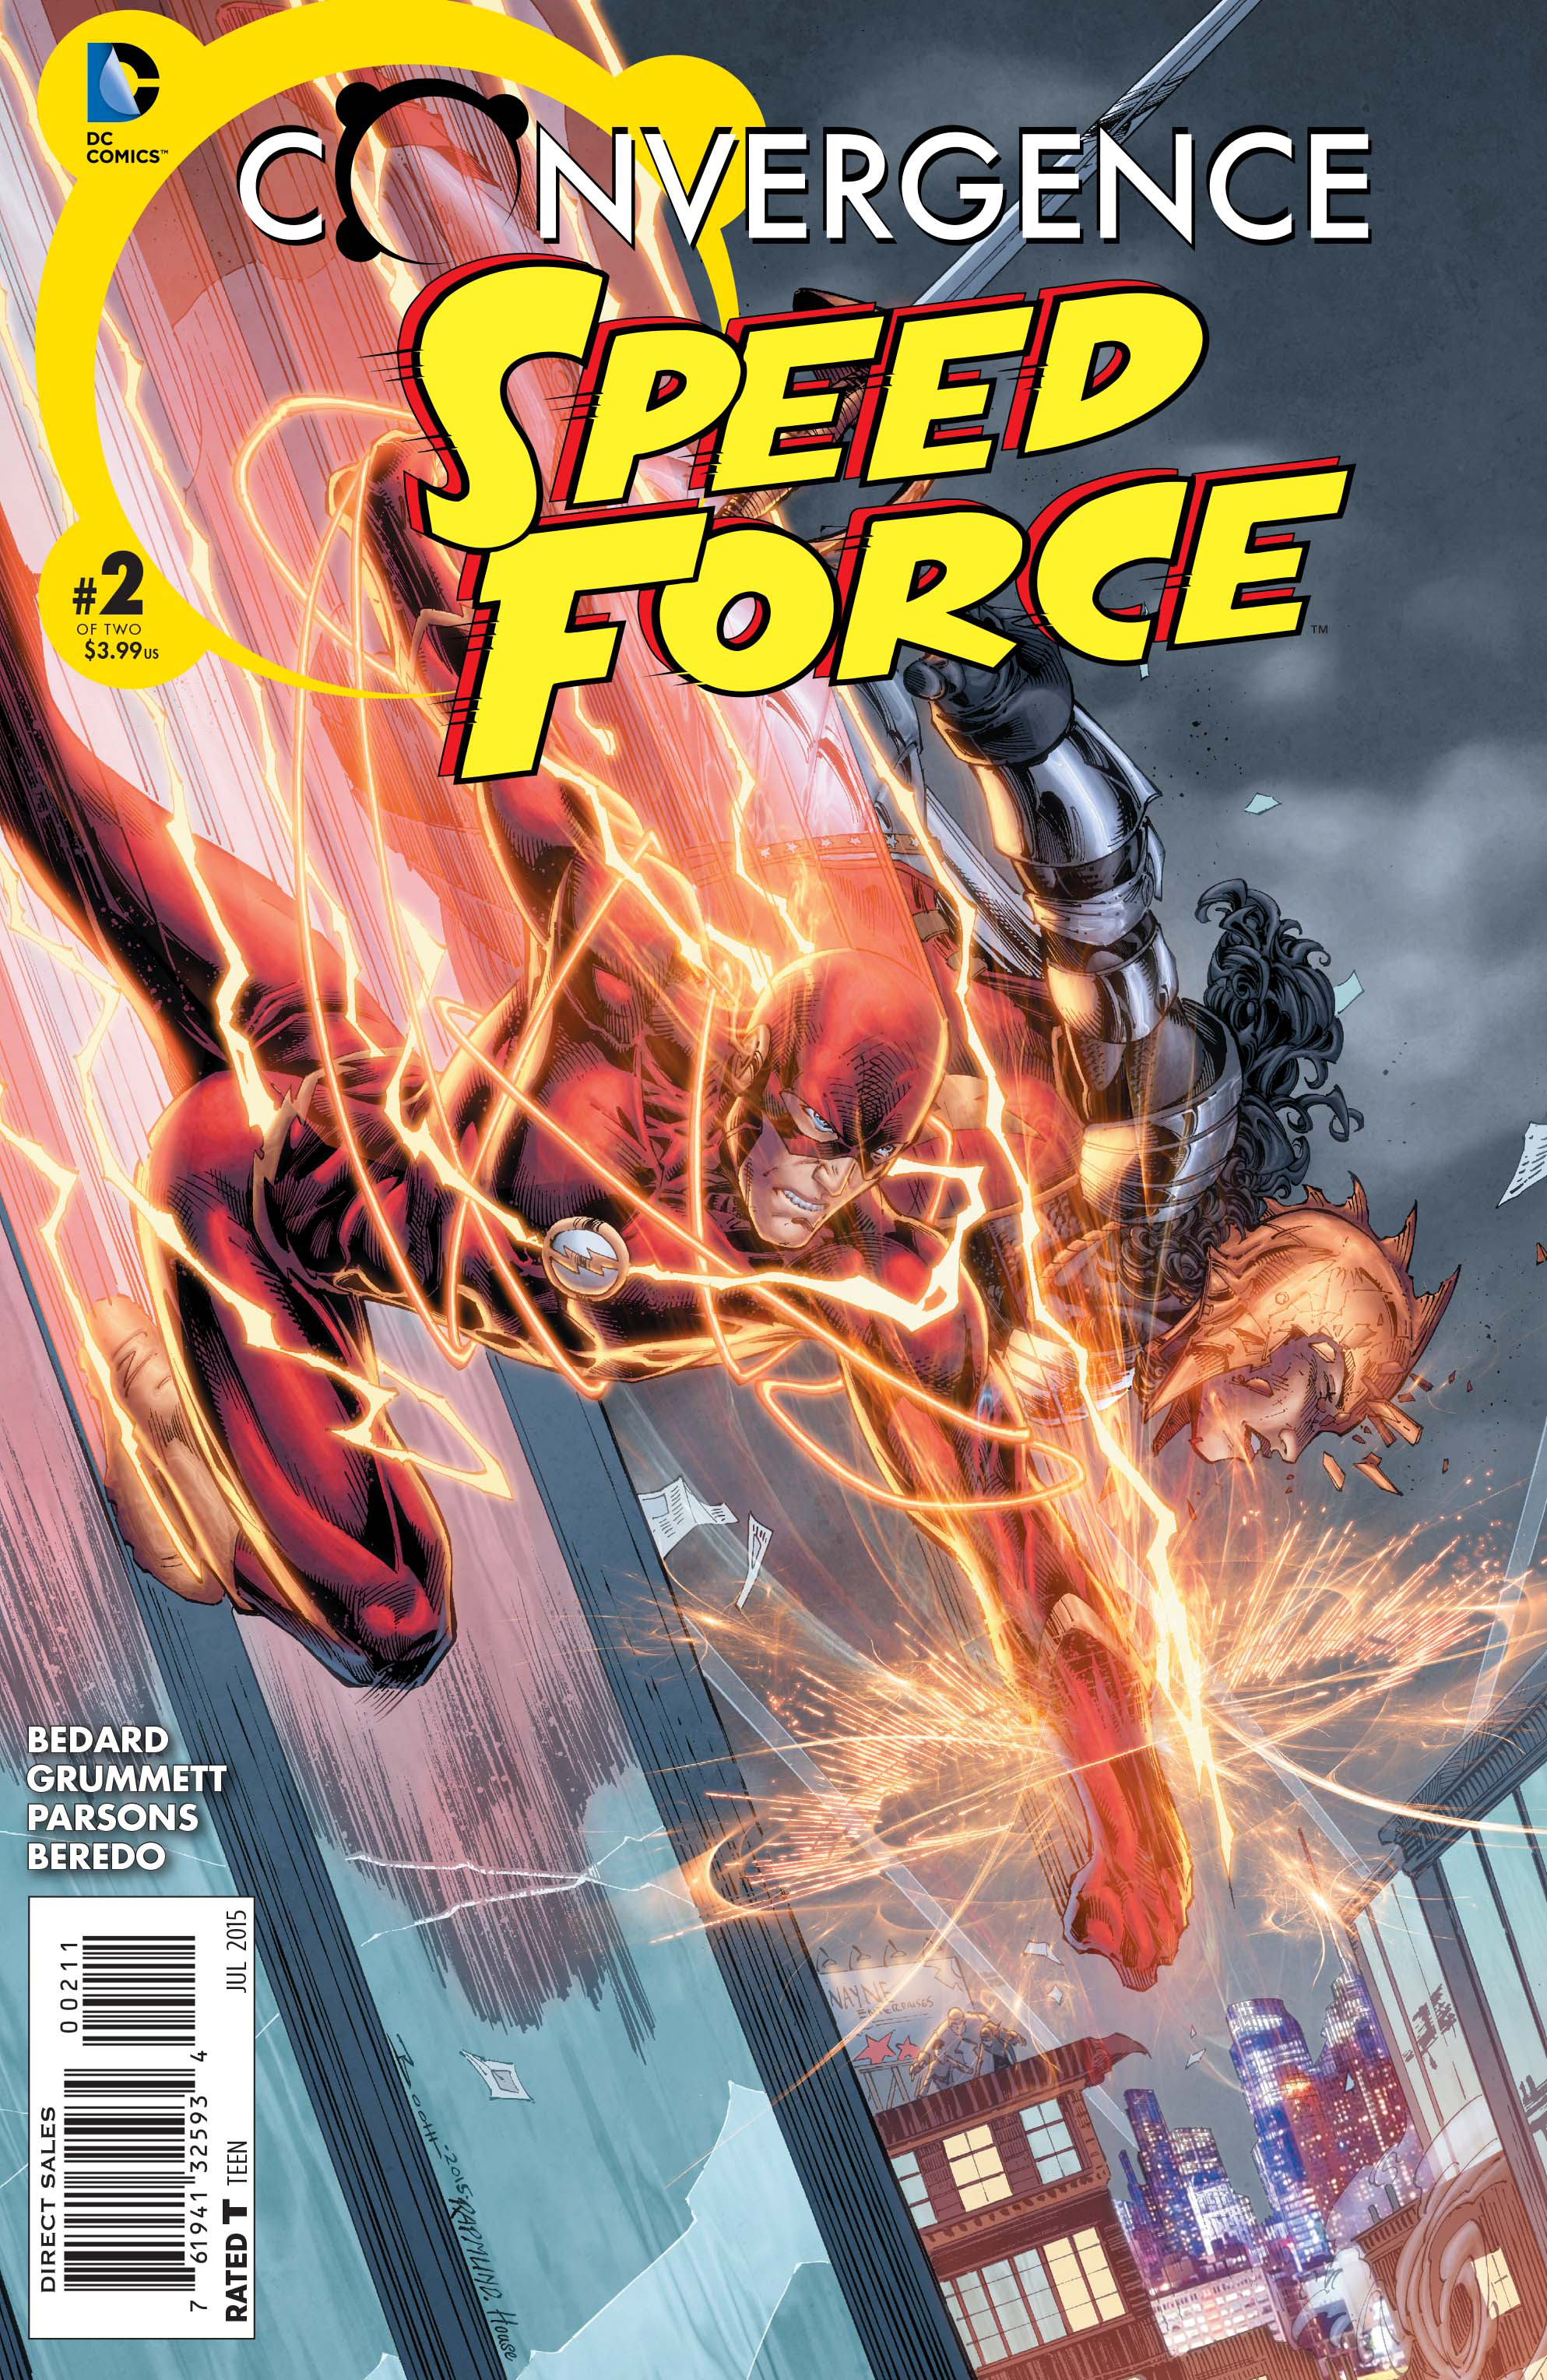 CONVERGENCE SPEED FORCE #2